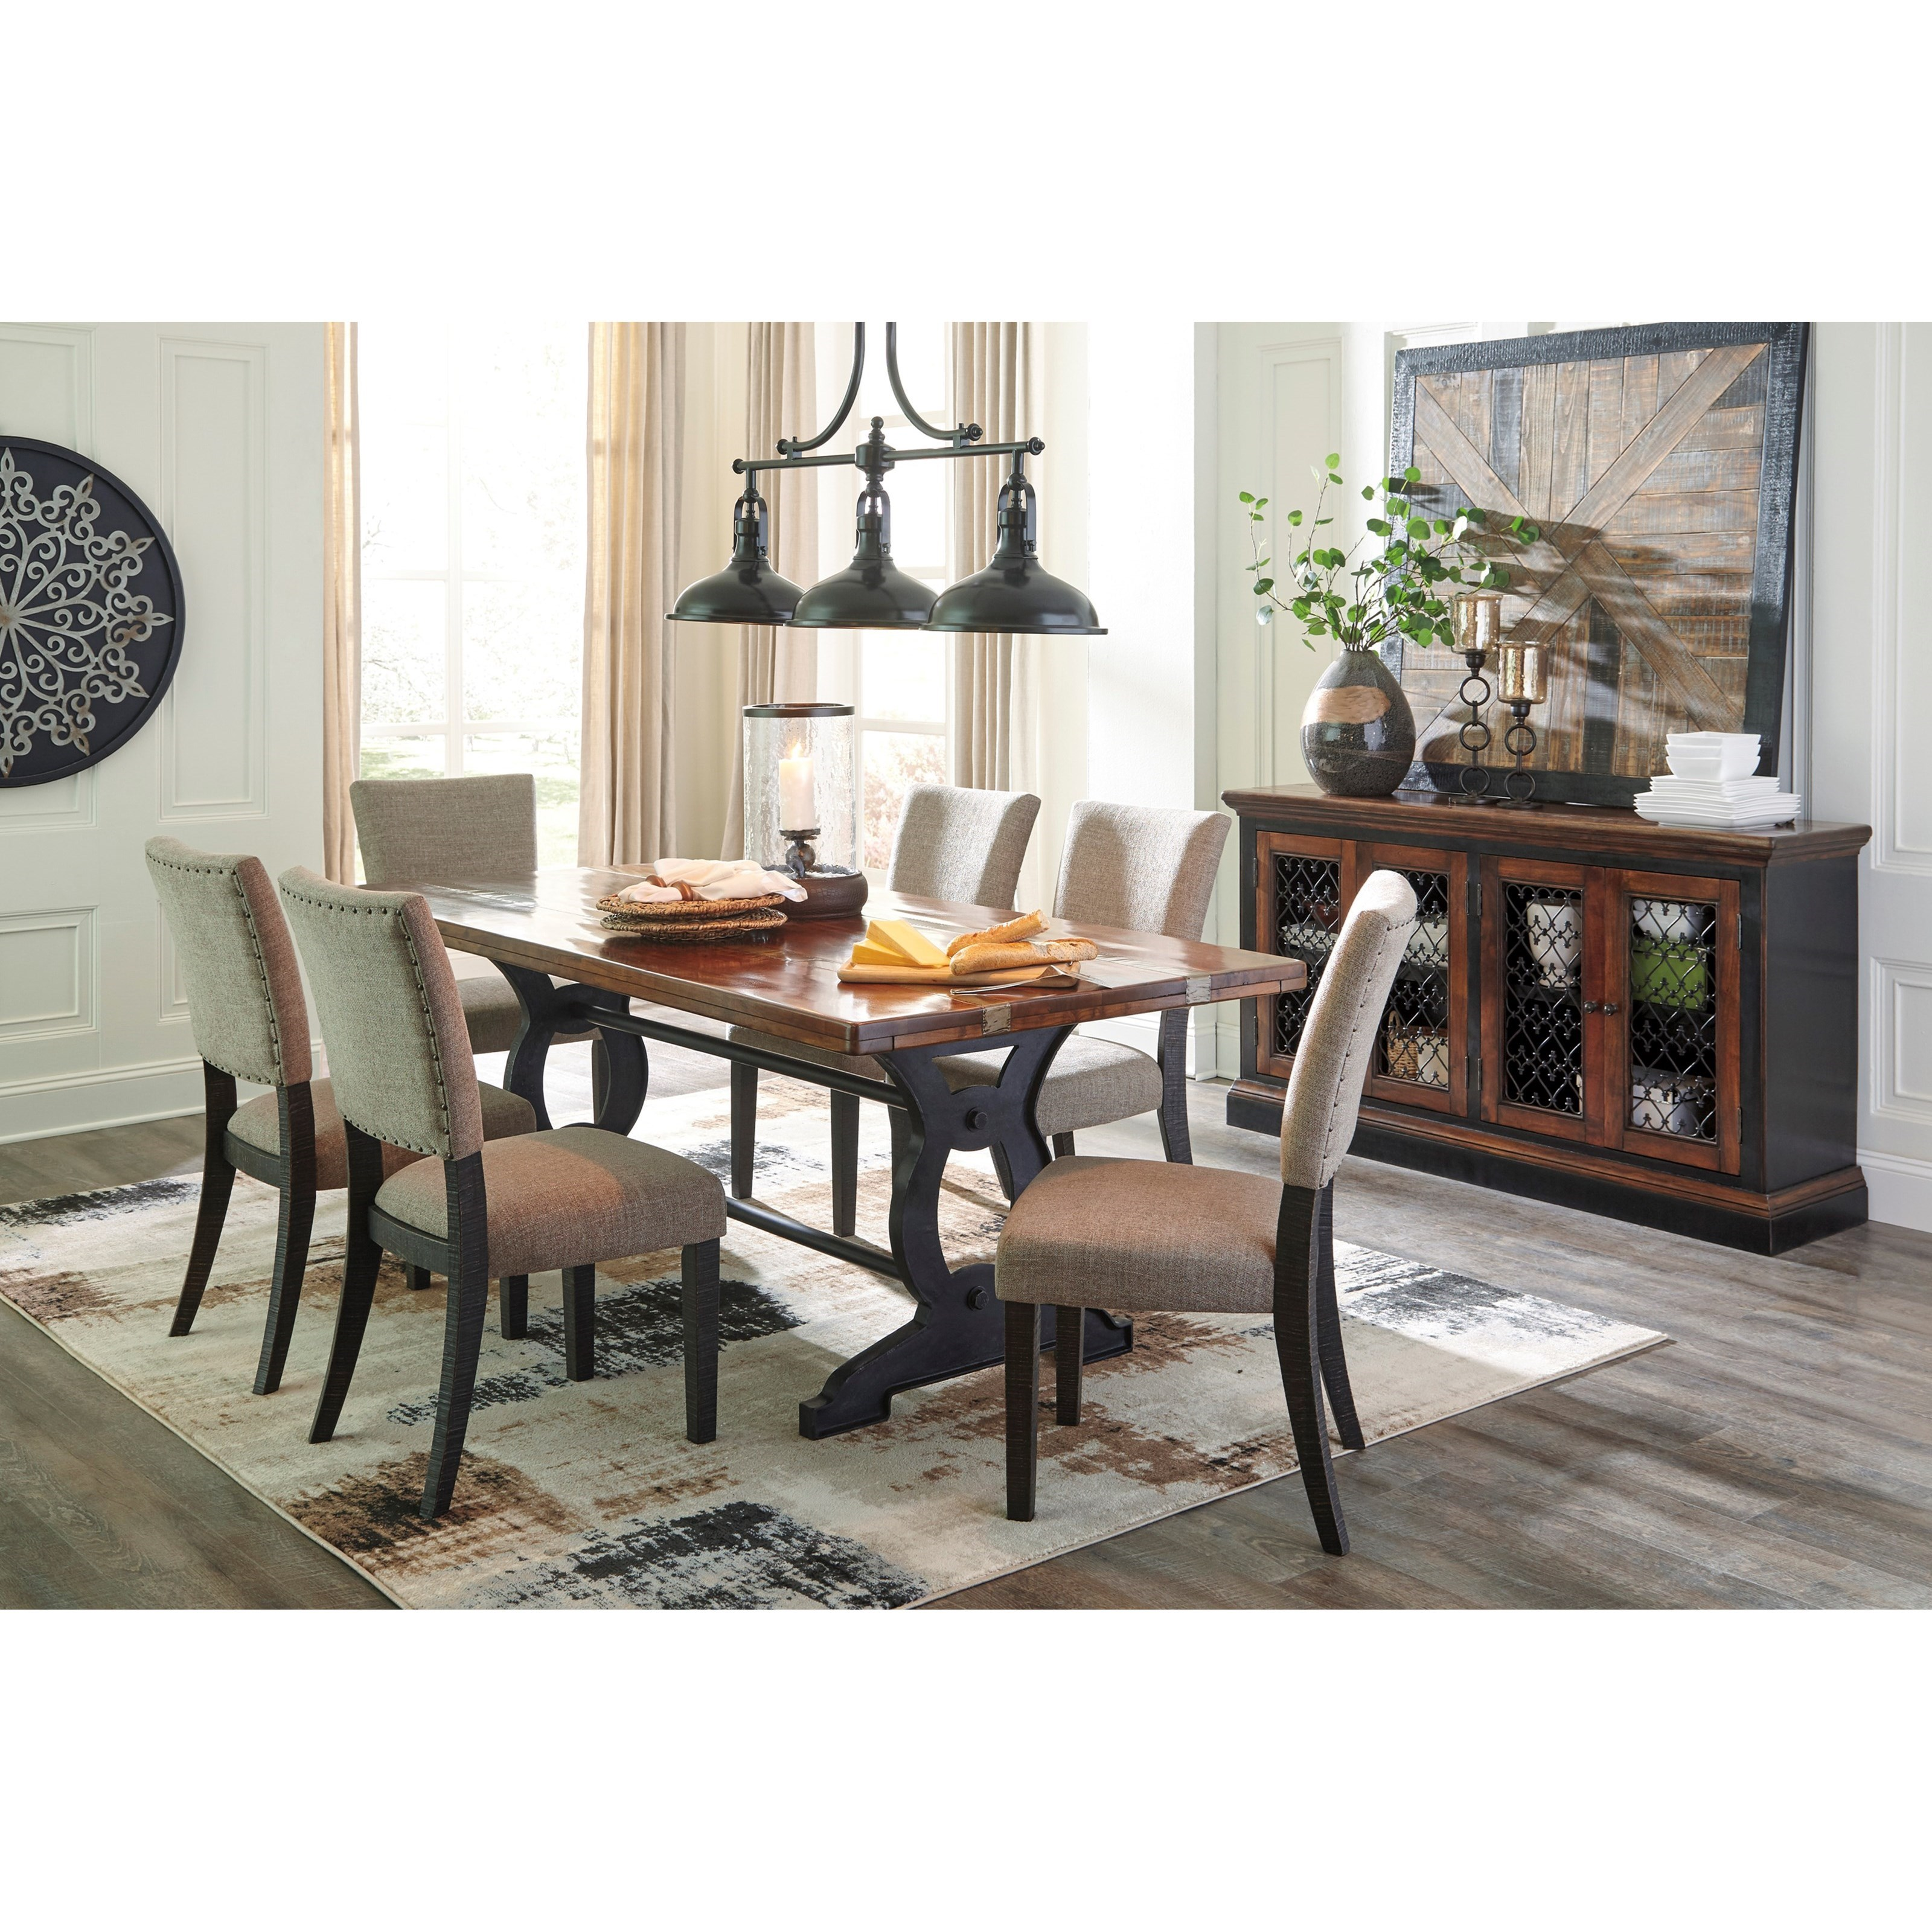 Ashley signature design zurani d709 25 solid wood top for Ashley furniture dining room table